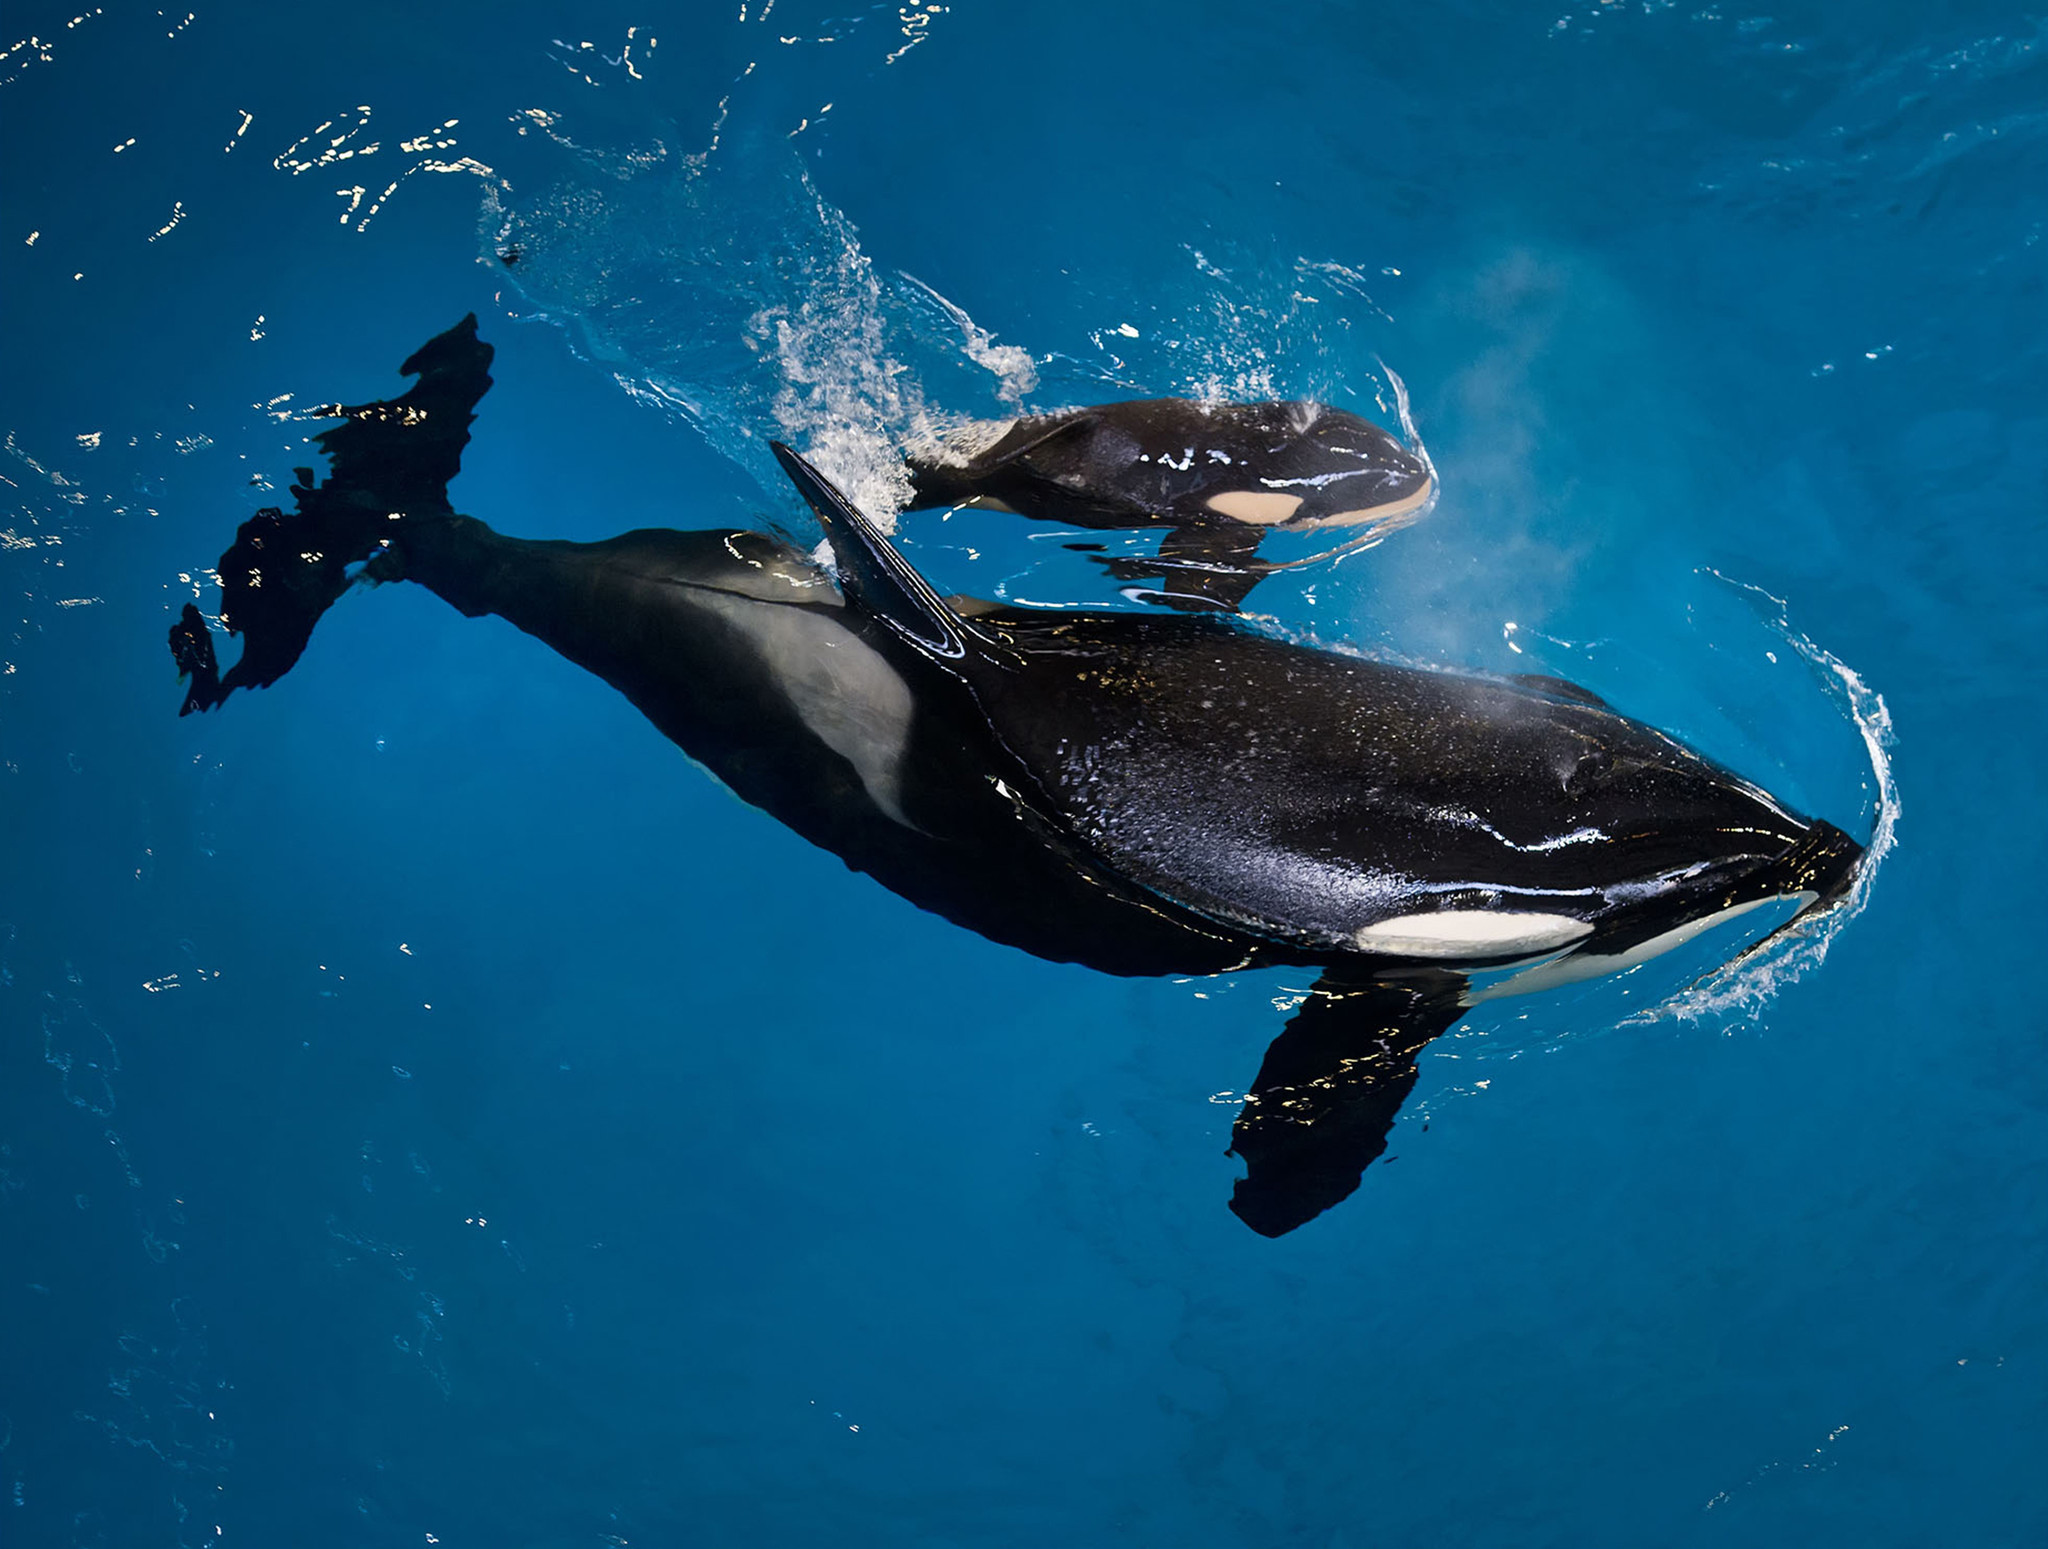 biologist orcas on killing spree attacking gray whale calves in